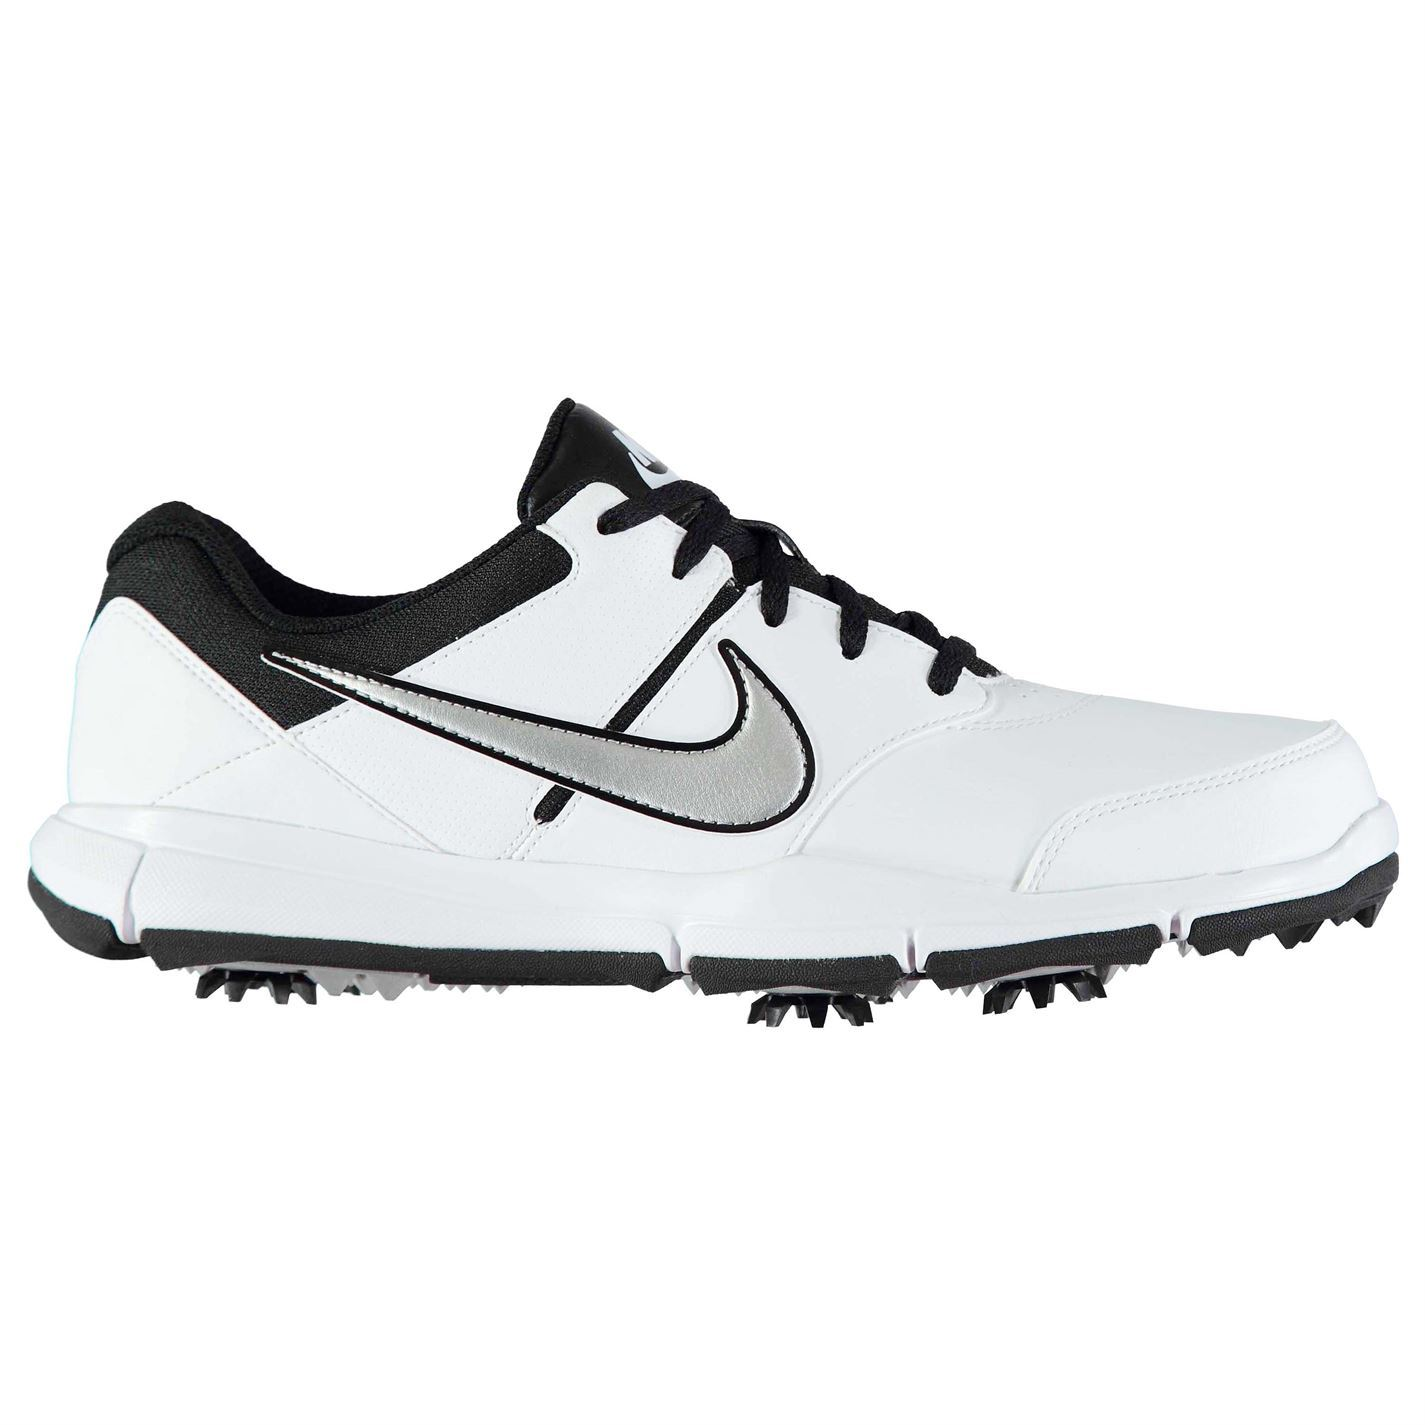 Nike-Durasport-4-Spiked-Golf-Shoes-Mens-Spikes-Footwear thumbnail 15